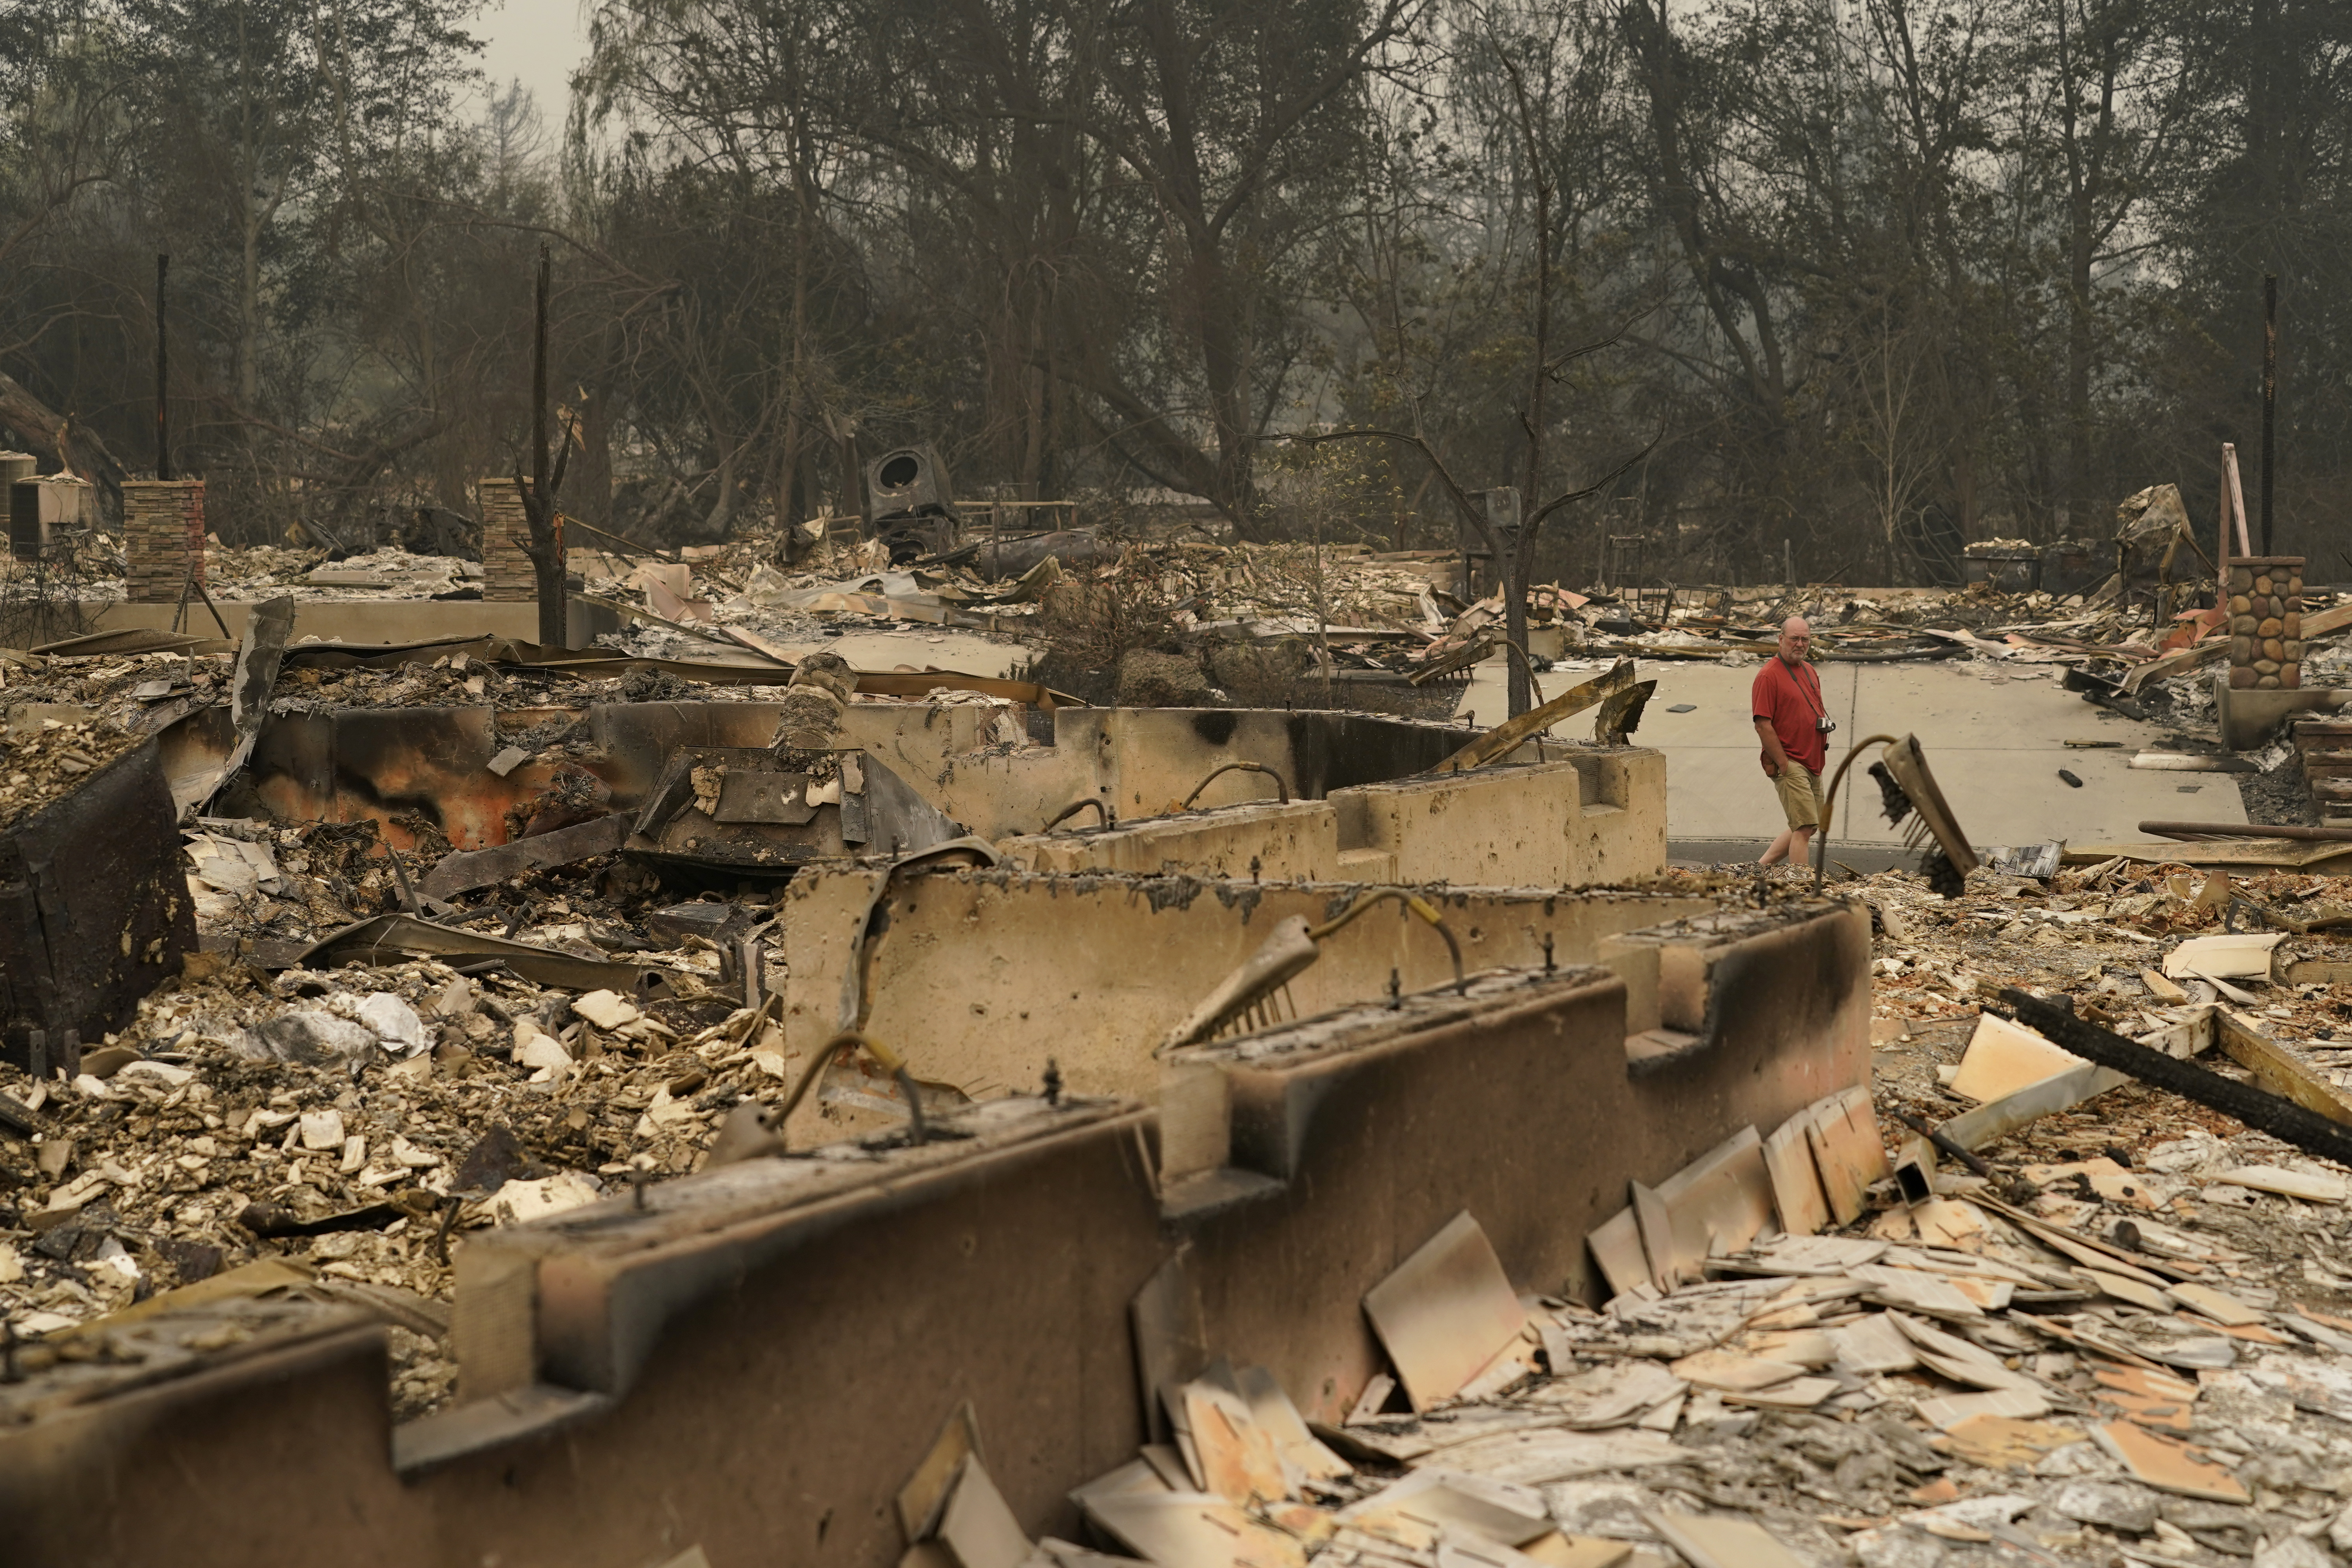 A man walks through a neighborhood destroyed by the Almeda Fire, Friday, Sept. 11, 2020, in Talent, Ore. (AP Photo/John Locher)